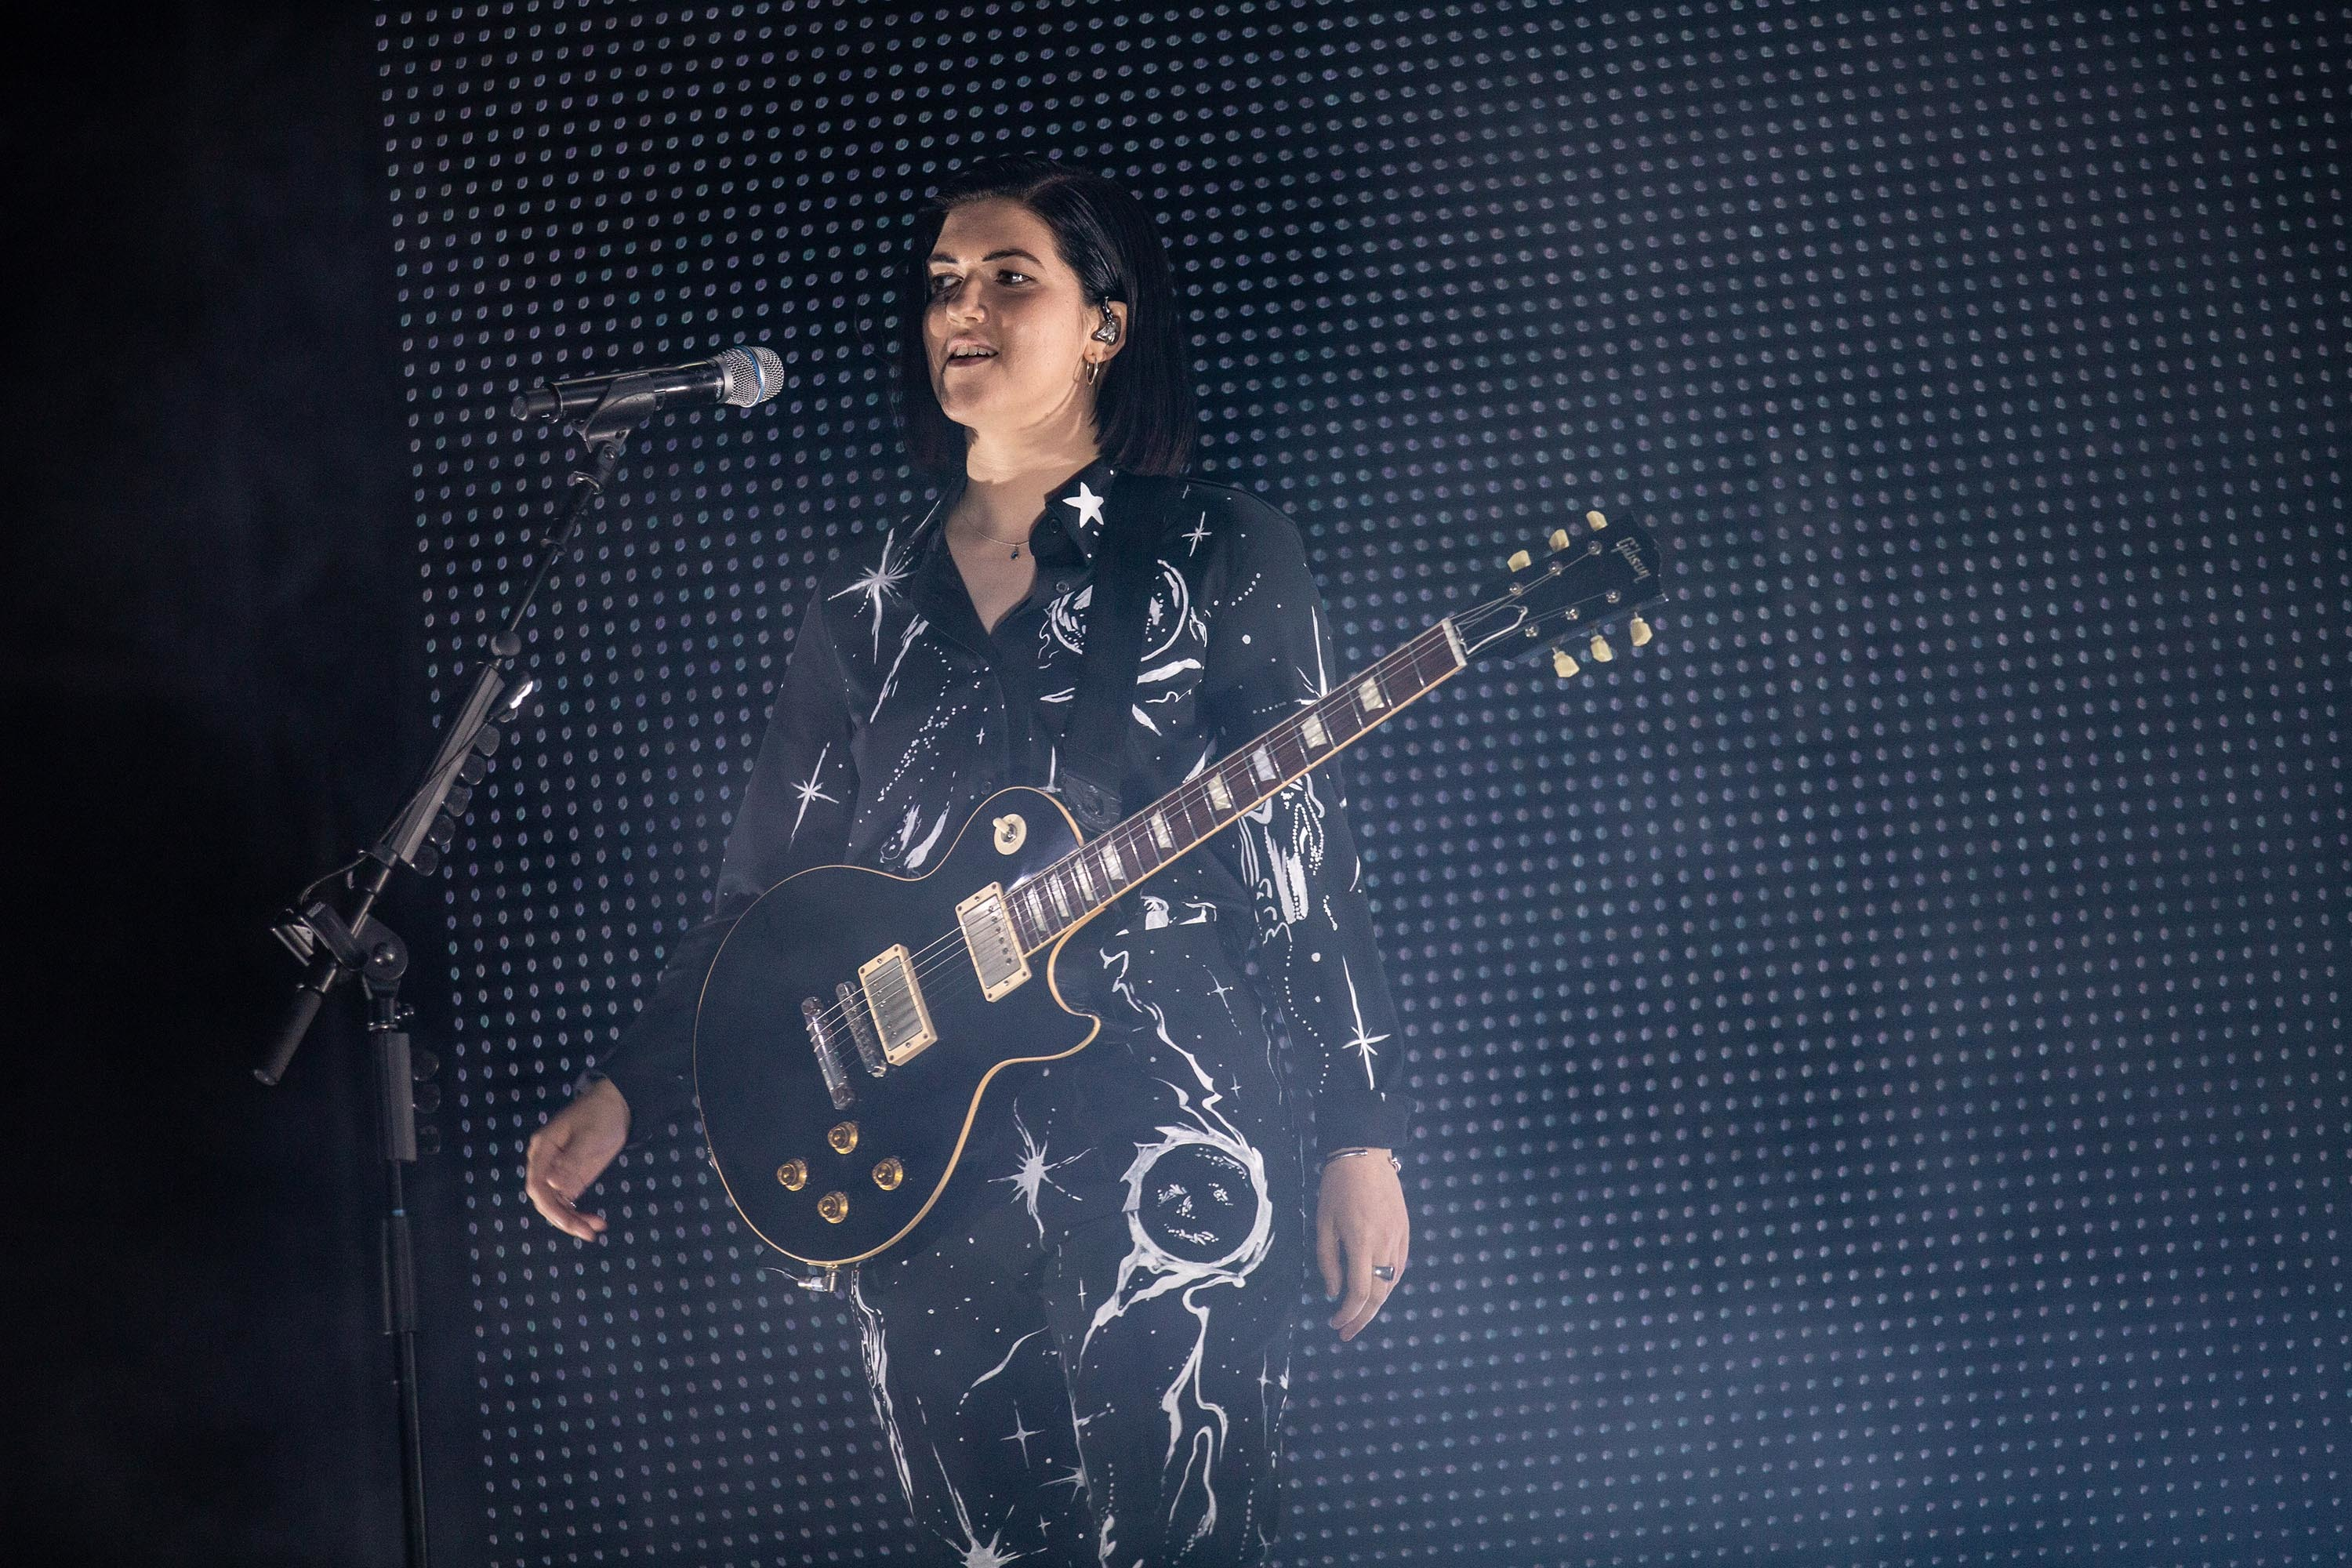 The xx and Lorde bring emotional hammerblows to an electrifying second day of All Points East